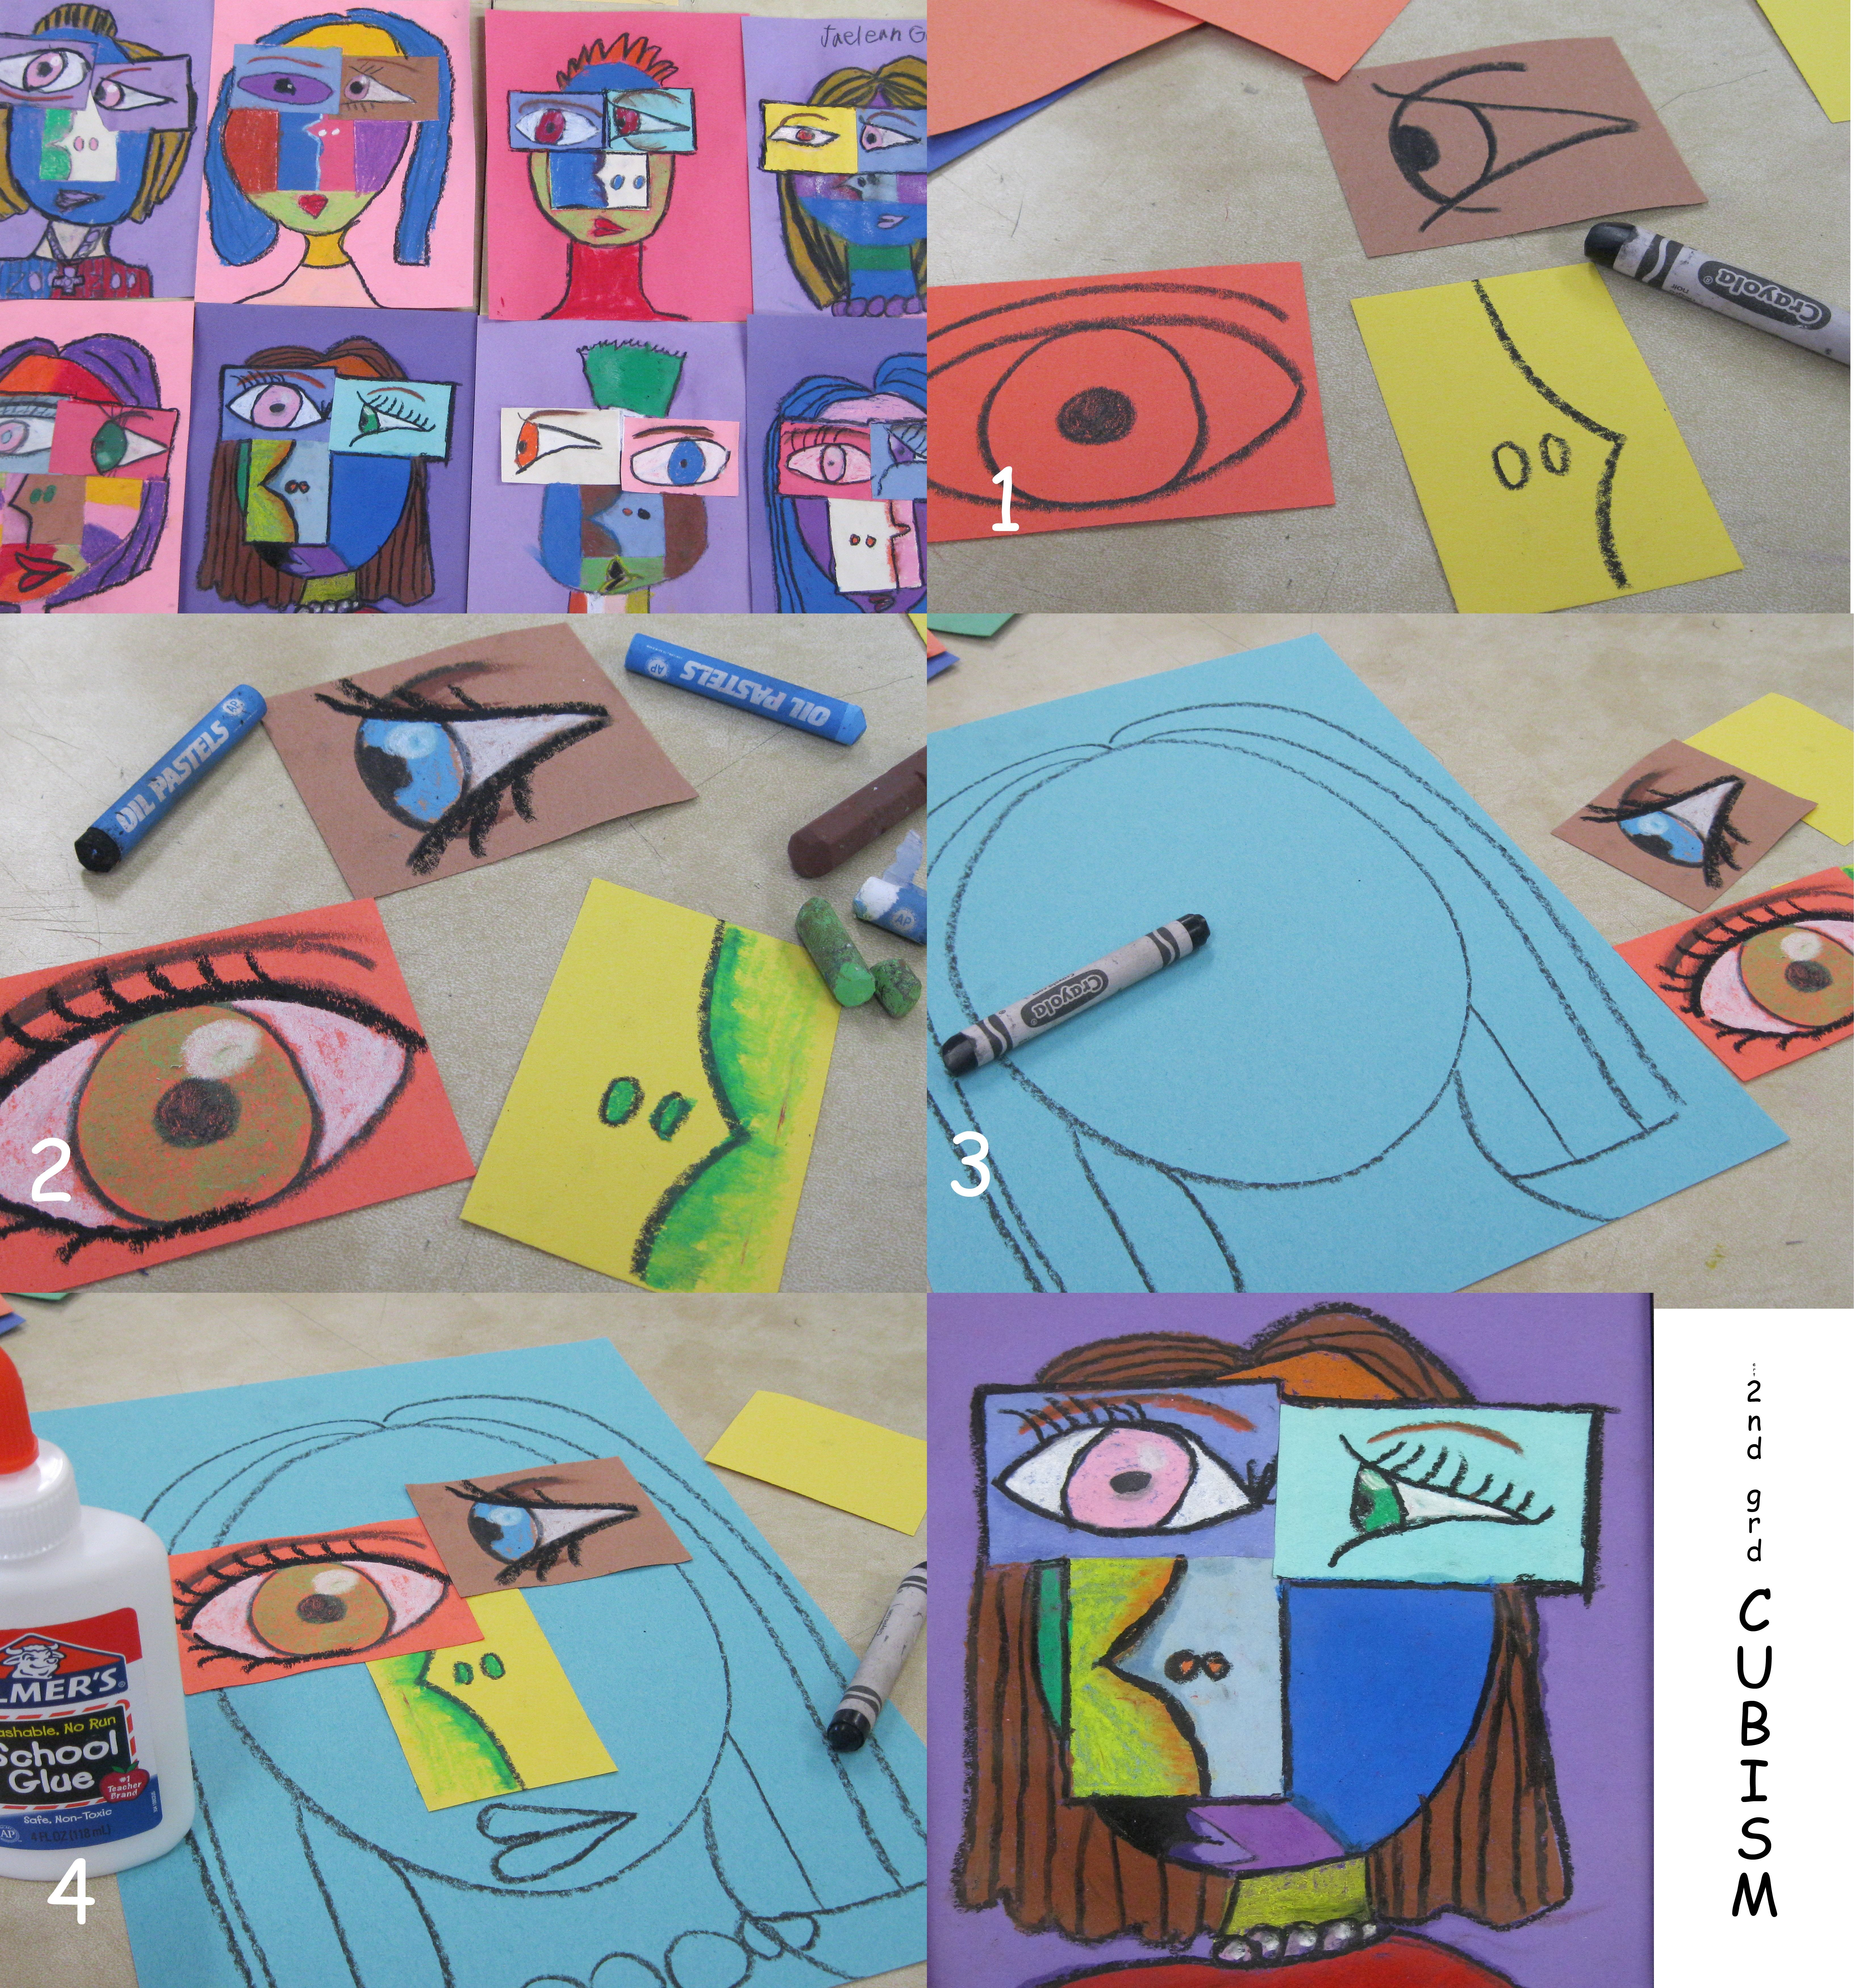 2nd Grade Cubism Oil Pastels Like The Ways The Facial Features Are Done Individually And Then